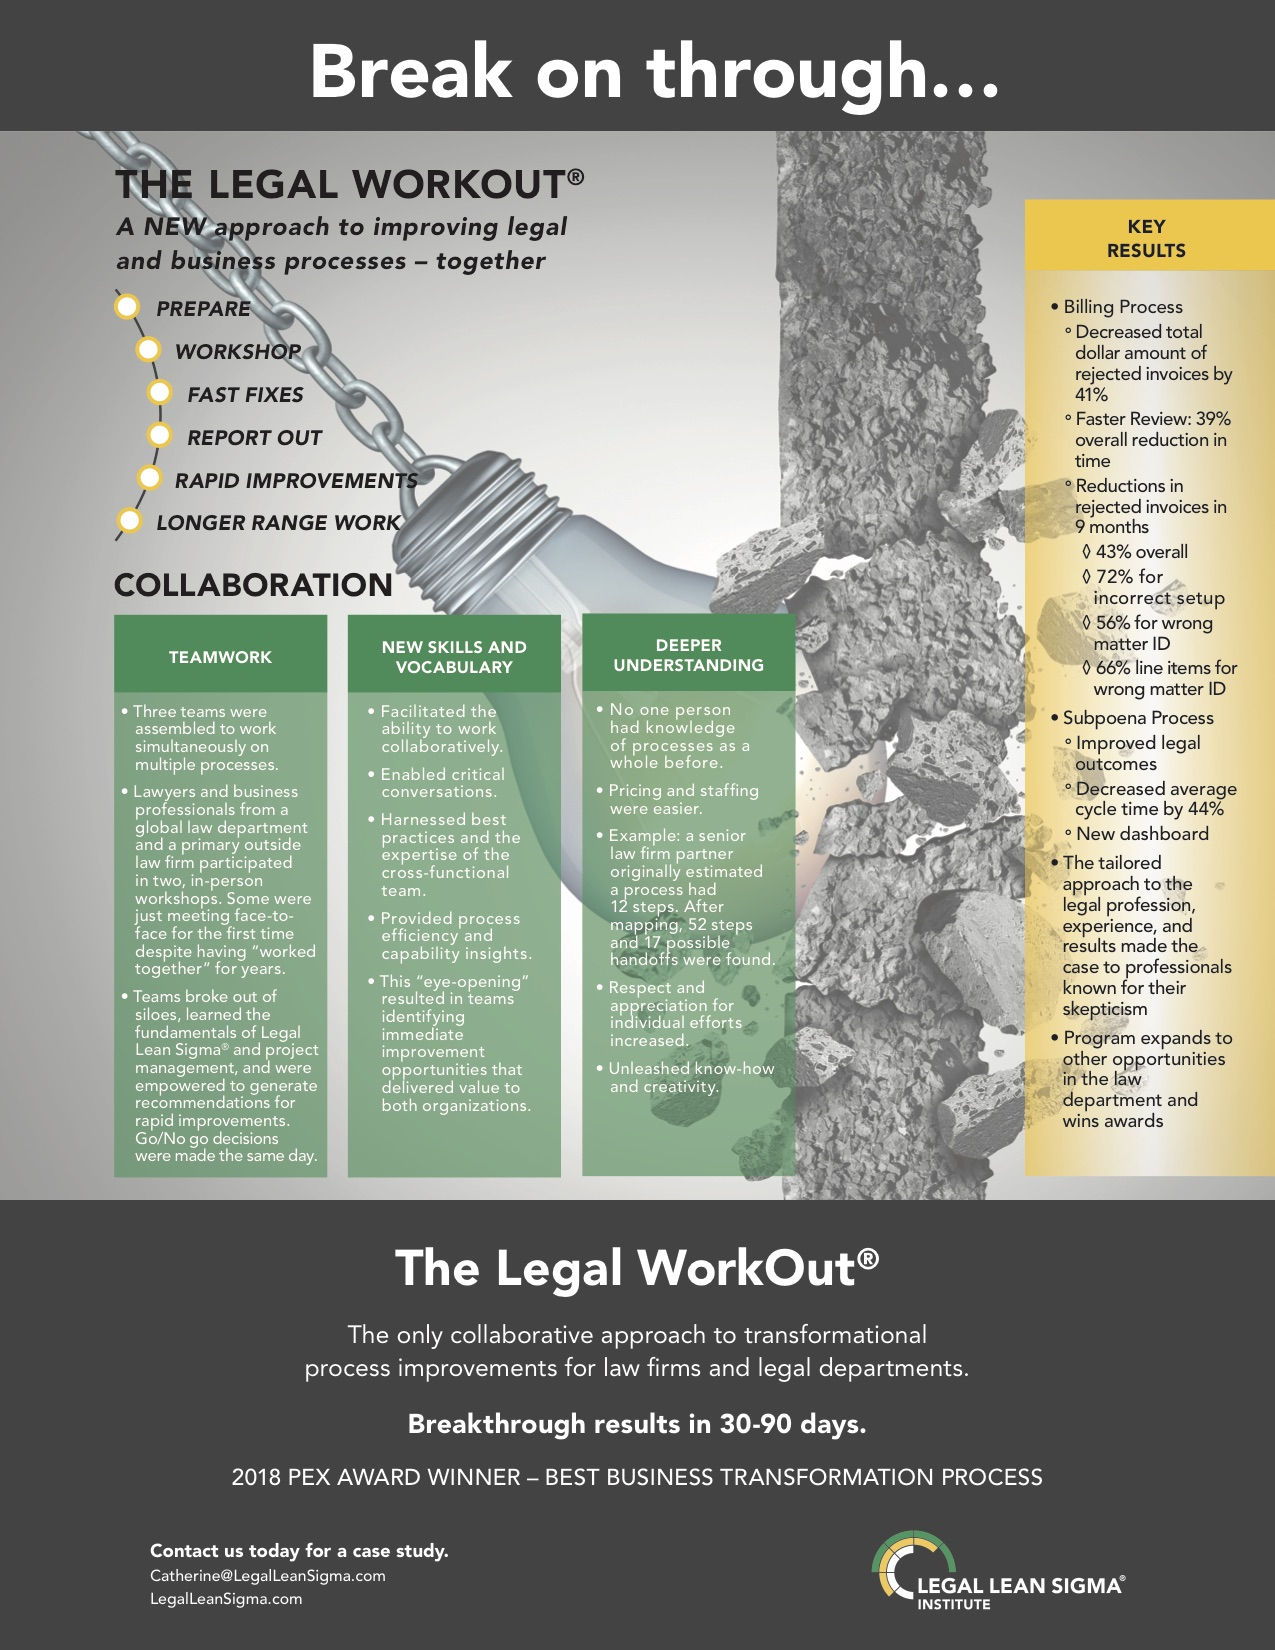 Legal WorkOut